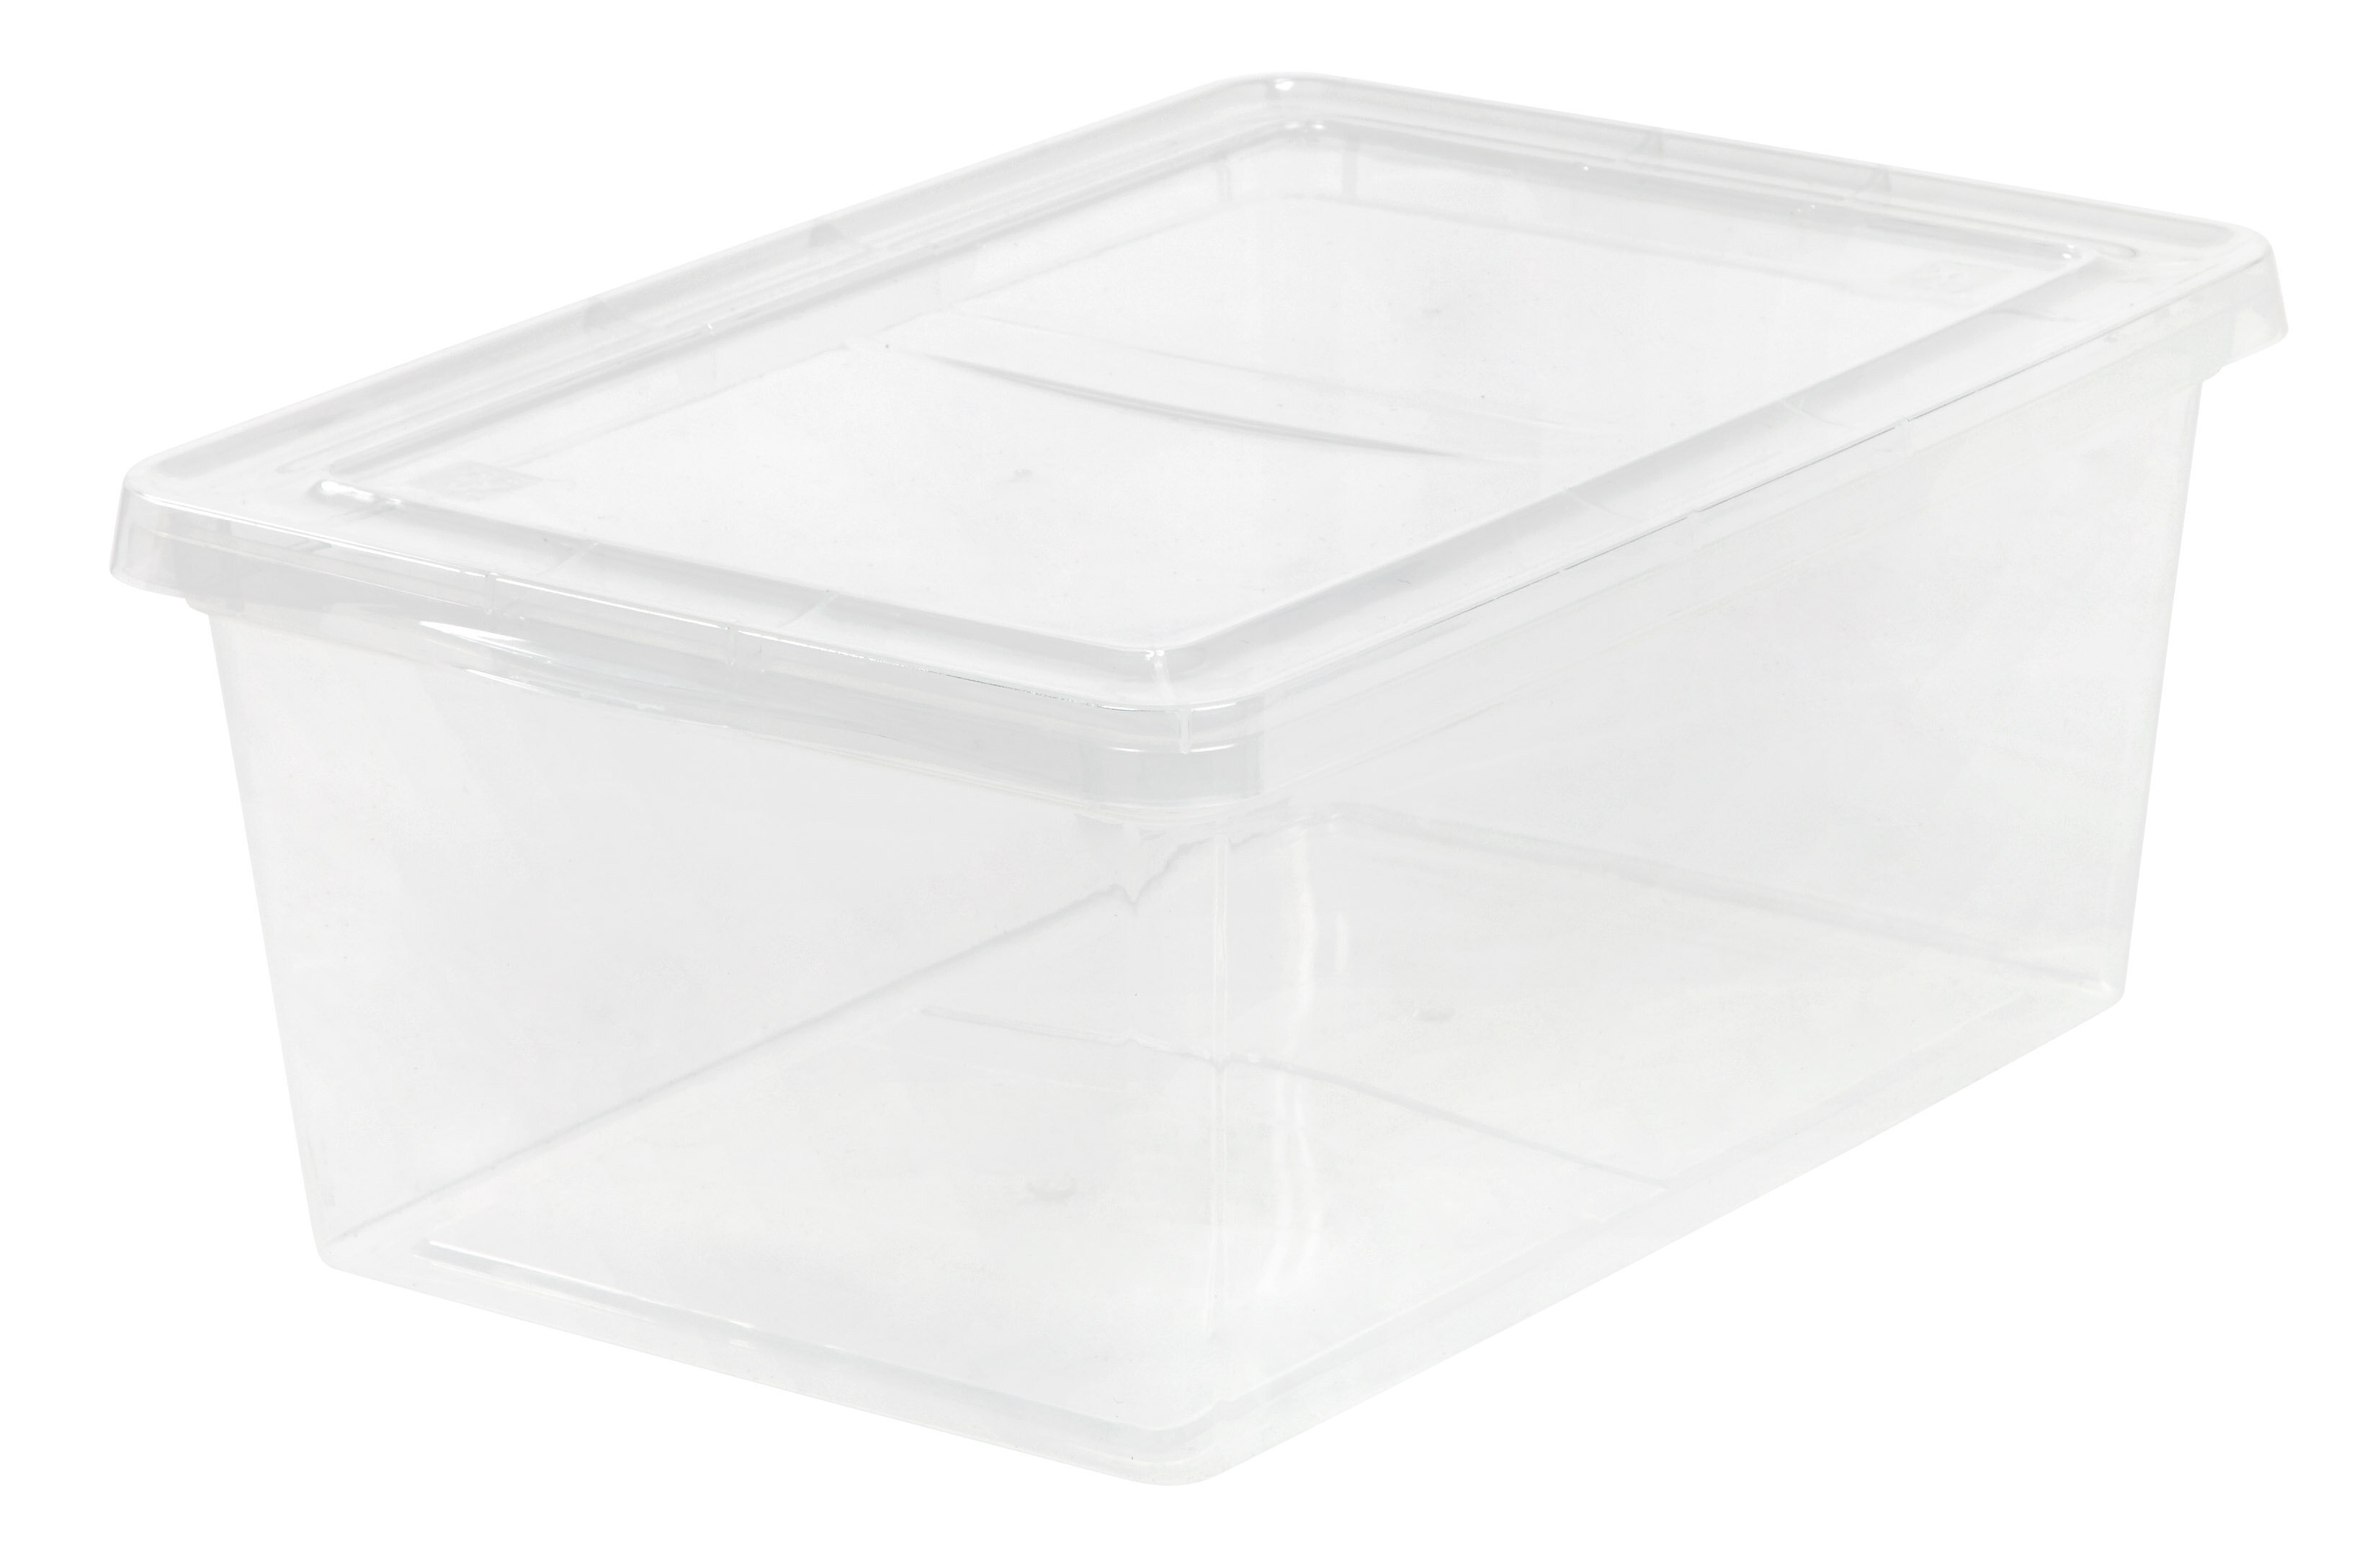 IRIS 17 Qt. Clear Storage Box U0026 Reviews | Wayfair